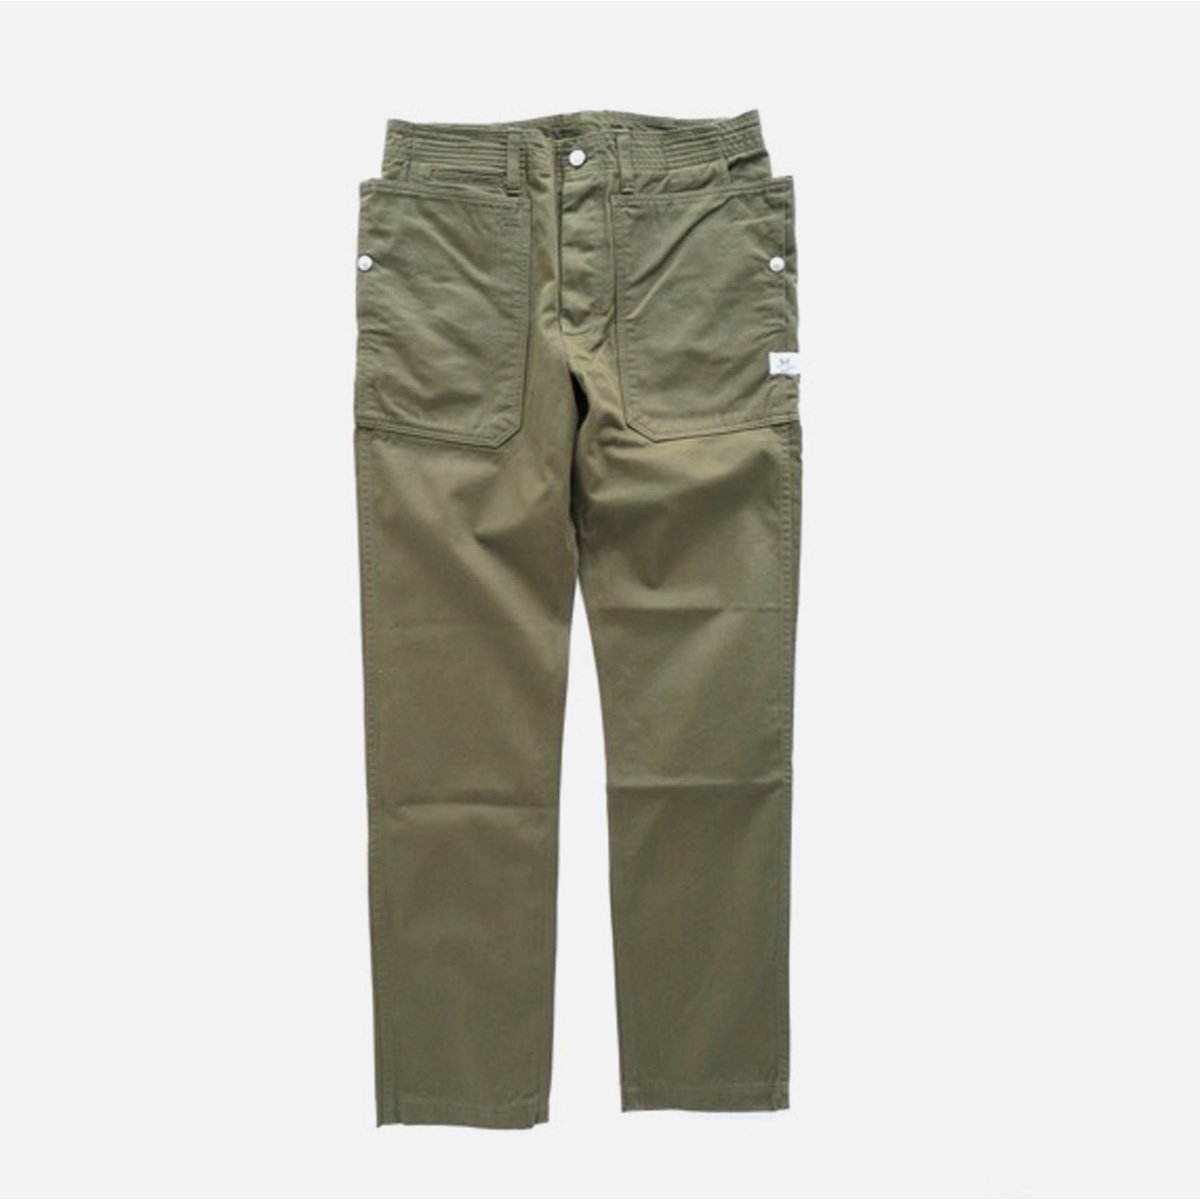 SASSAFRAS FALLLEAF SPRAYER PANTS CHINO (OLIVE)